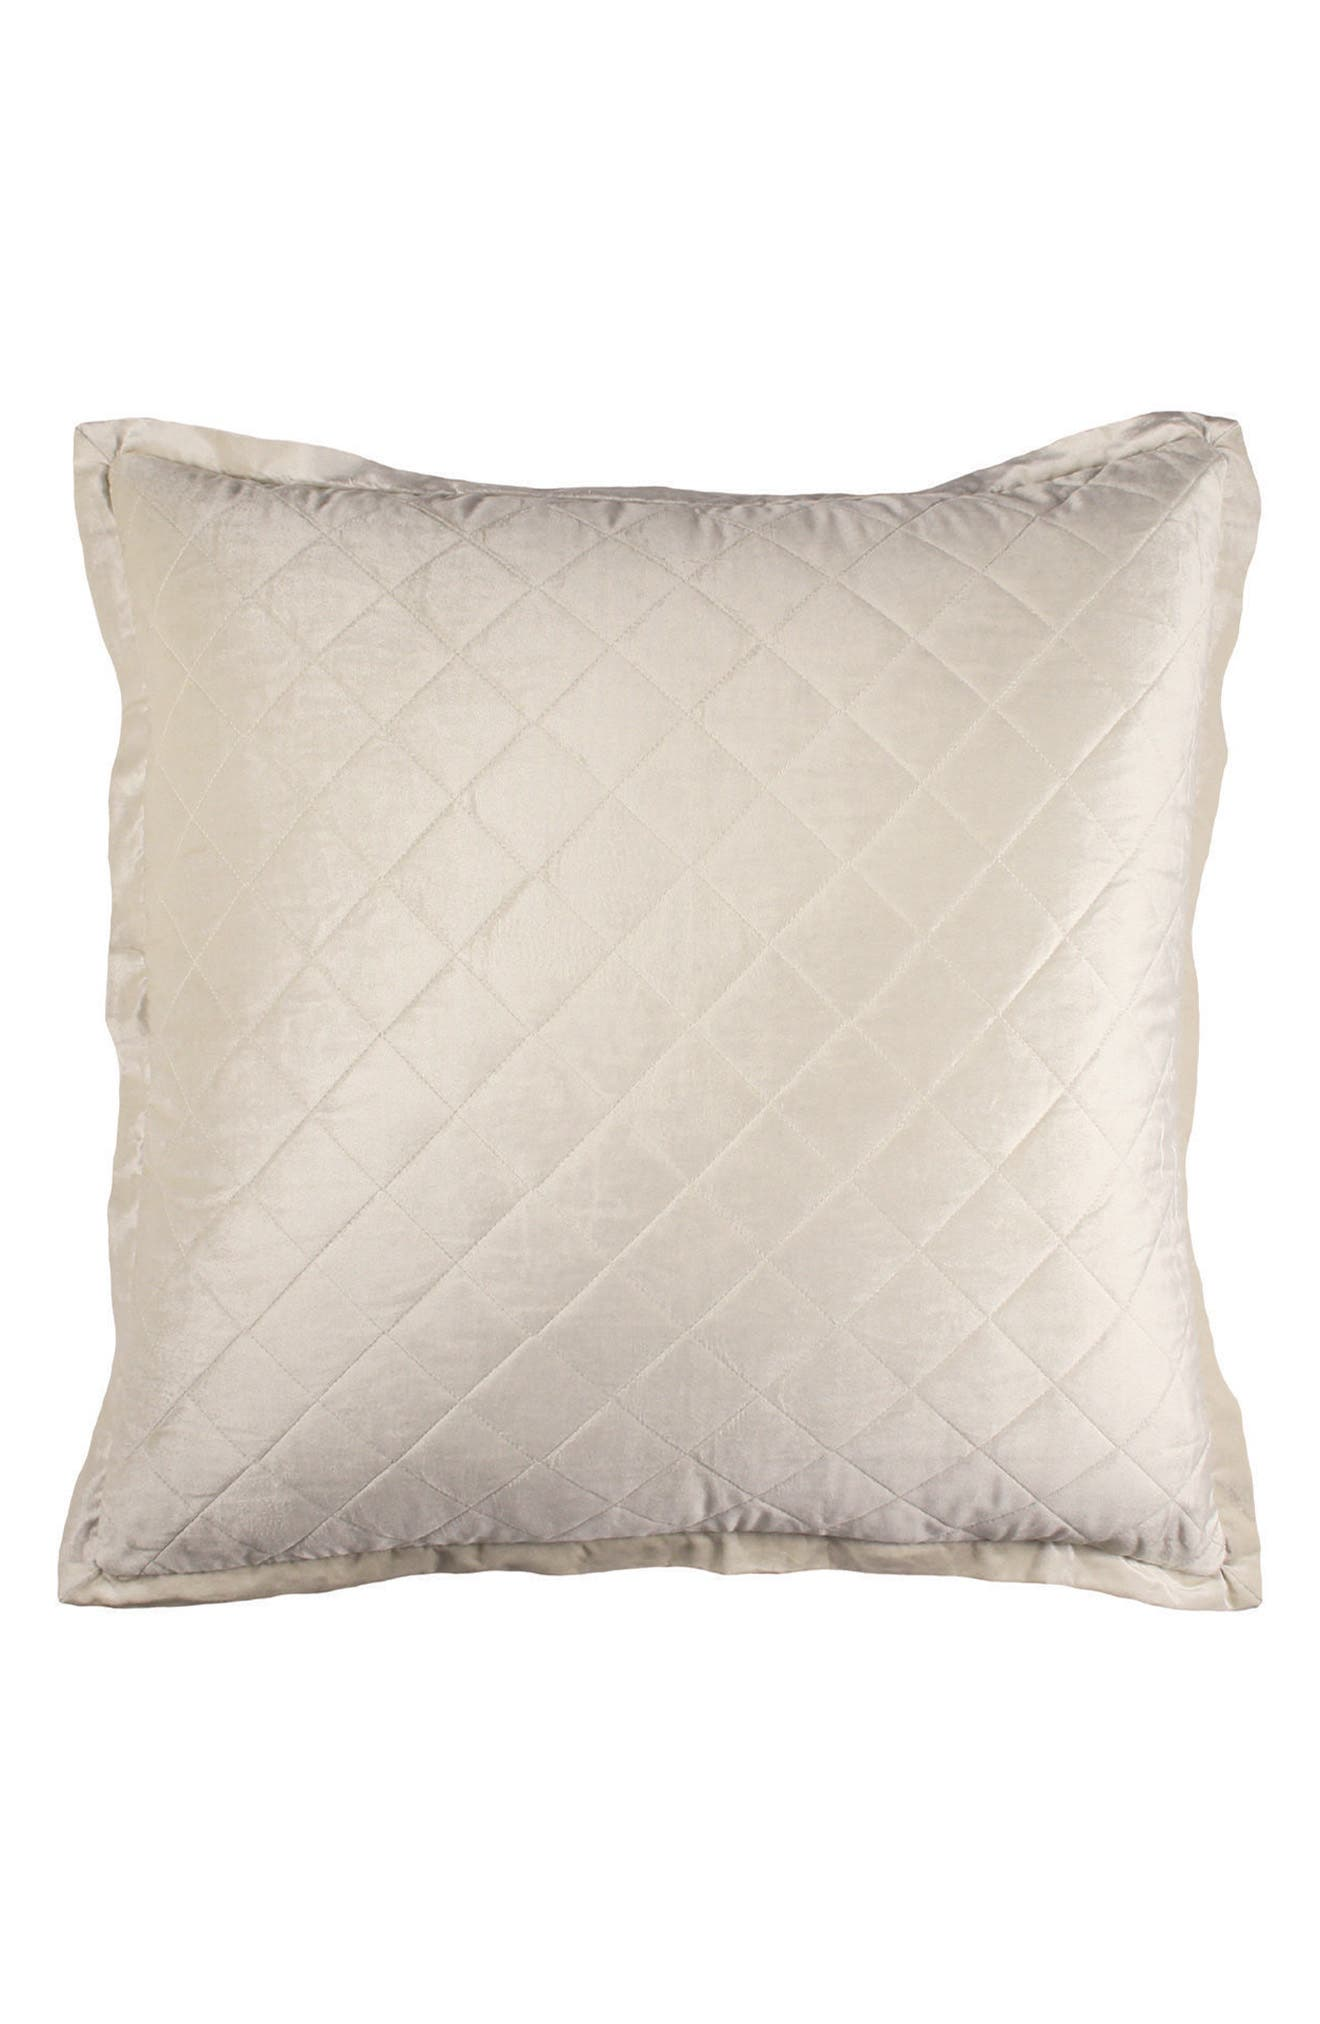 Chloe Quilted Euro Sham,                         Main,                         color, Ivory